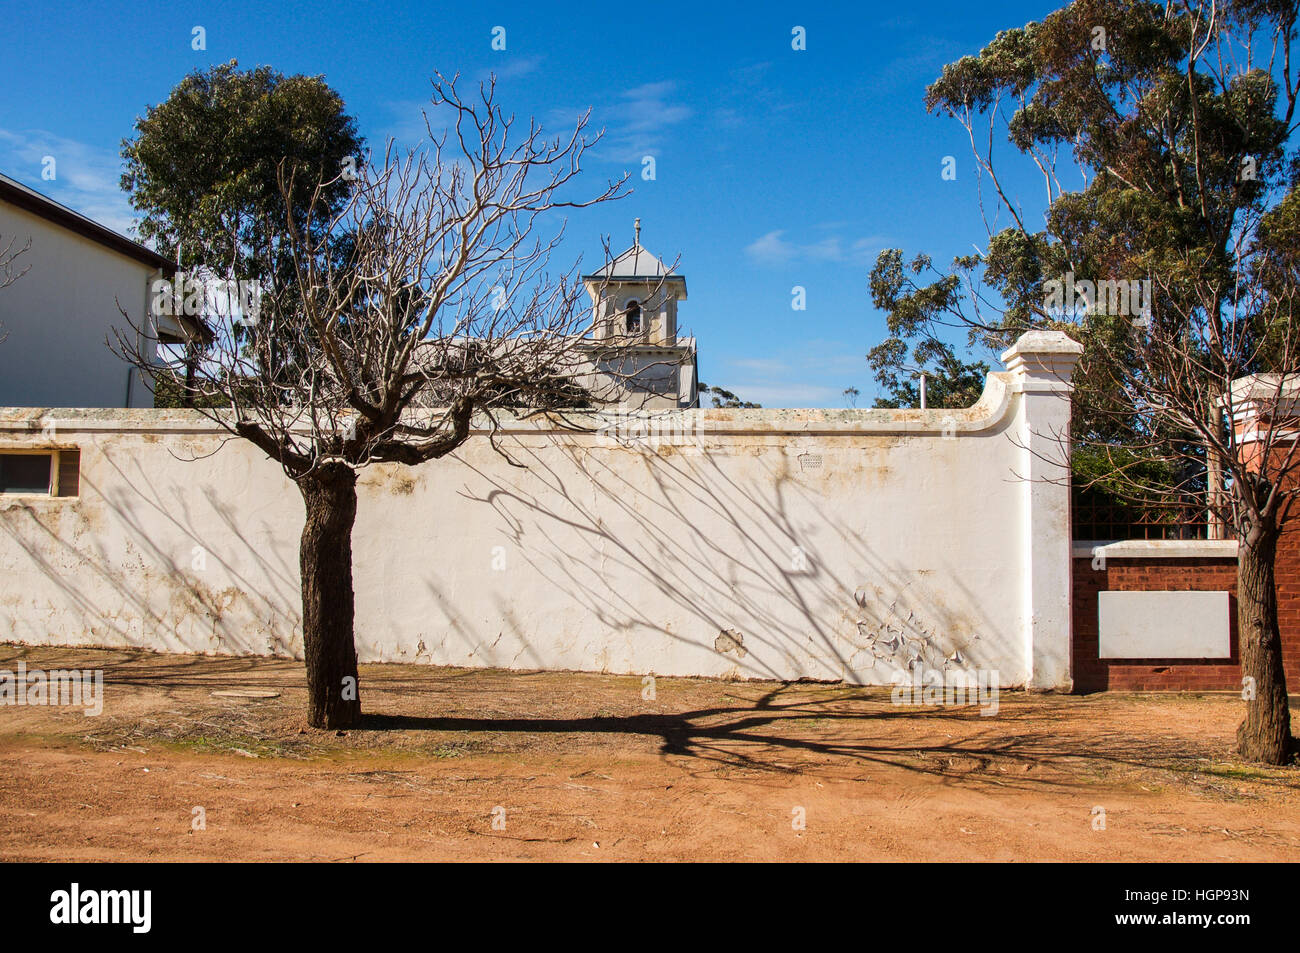 Leafless tree on footpath with shadow lines on ground and white boundary wall with trees and a blue sky. - Stock Image